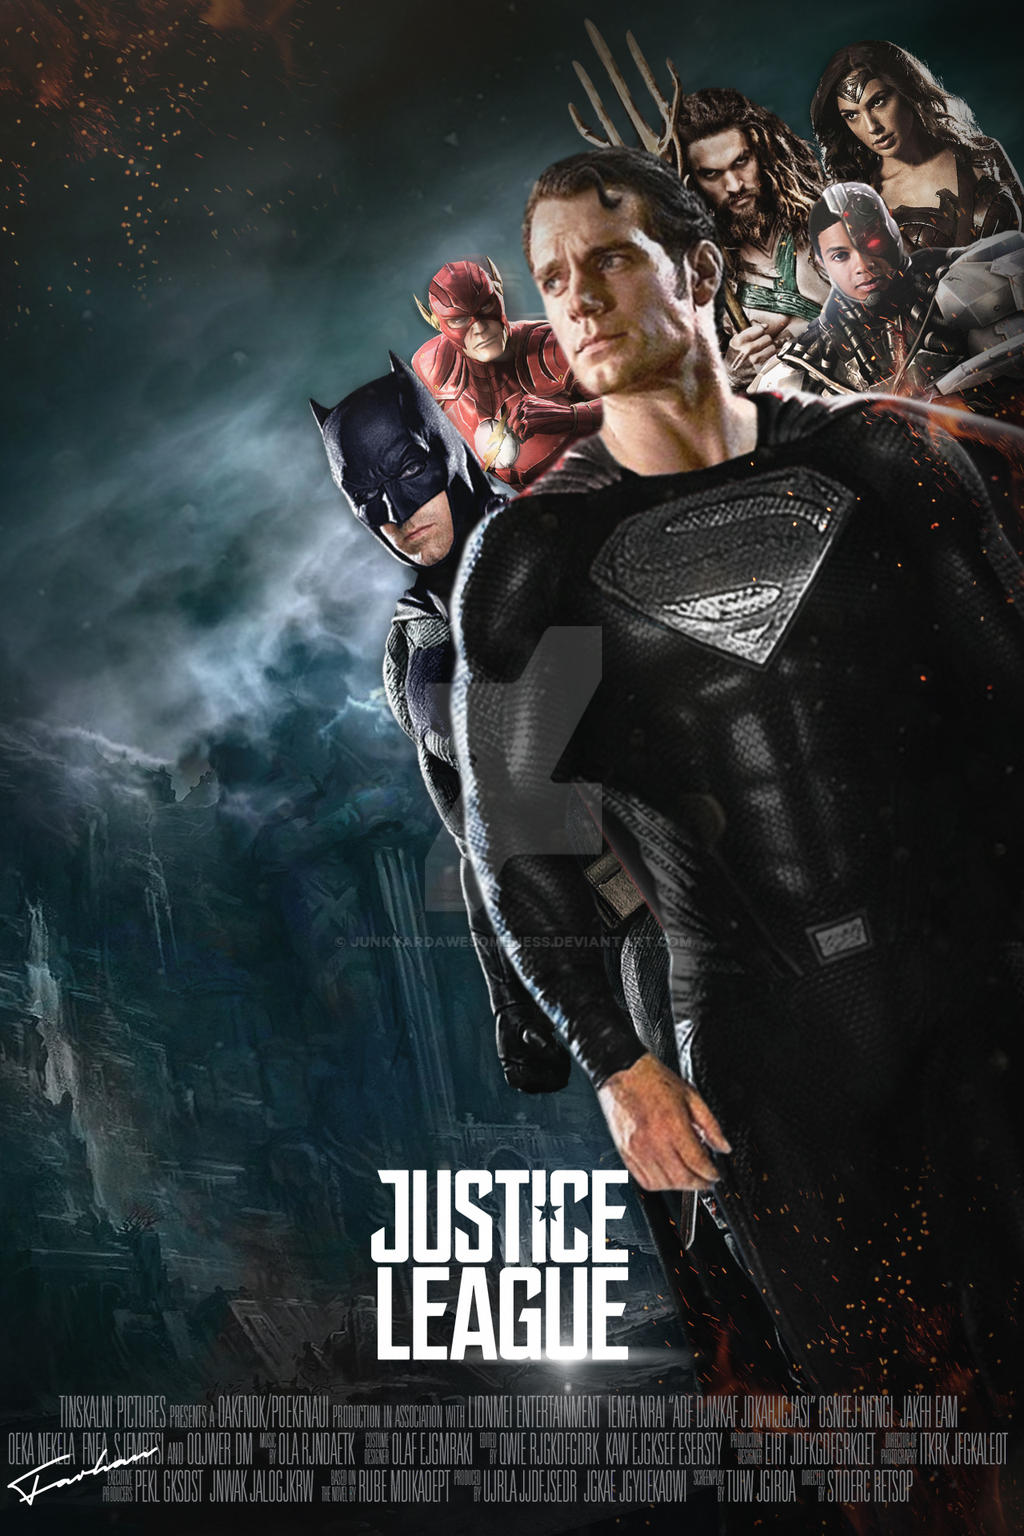 justice_league_2017_movie_poster_hd_by_j